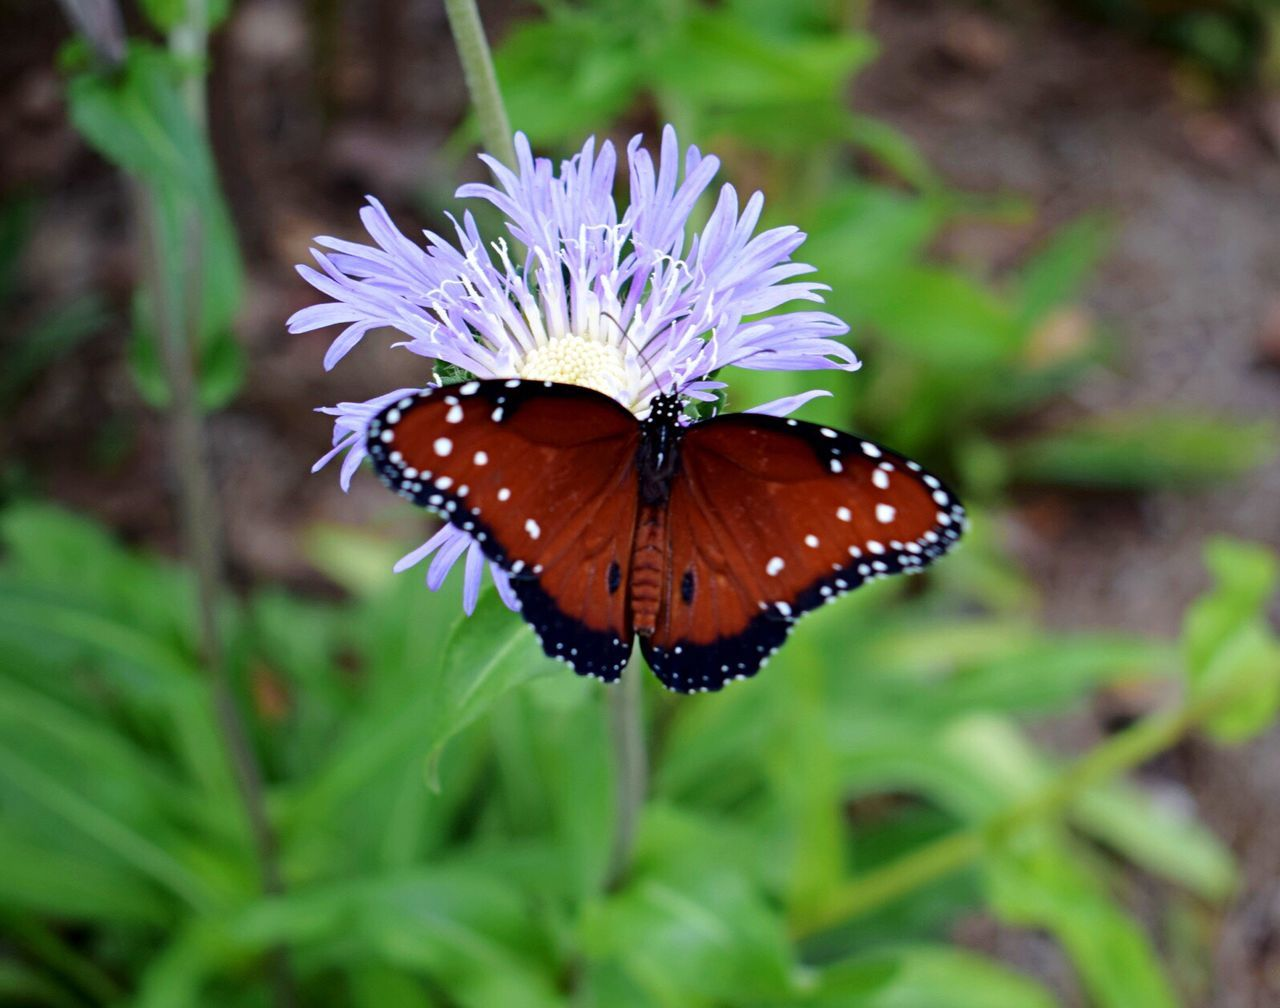 insect, one animal, animal themes, animals in the wild, butterfly - insect, nature, flower, growth, butterfly, no people, plant, beauty in nature, leaf, fragility, flower head, outdoors, close-up, day, freshness, pollination